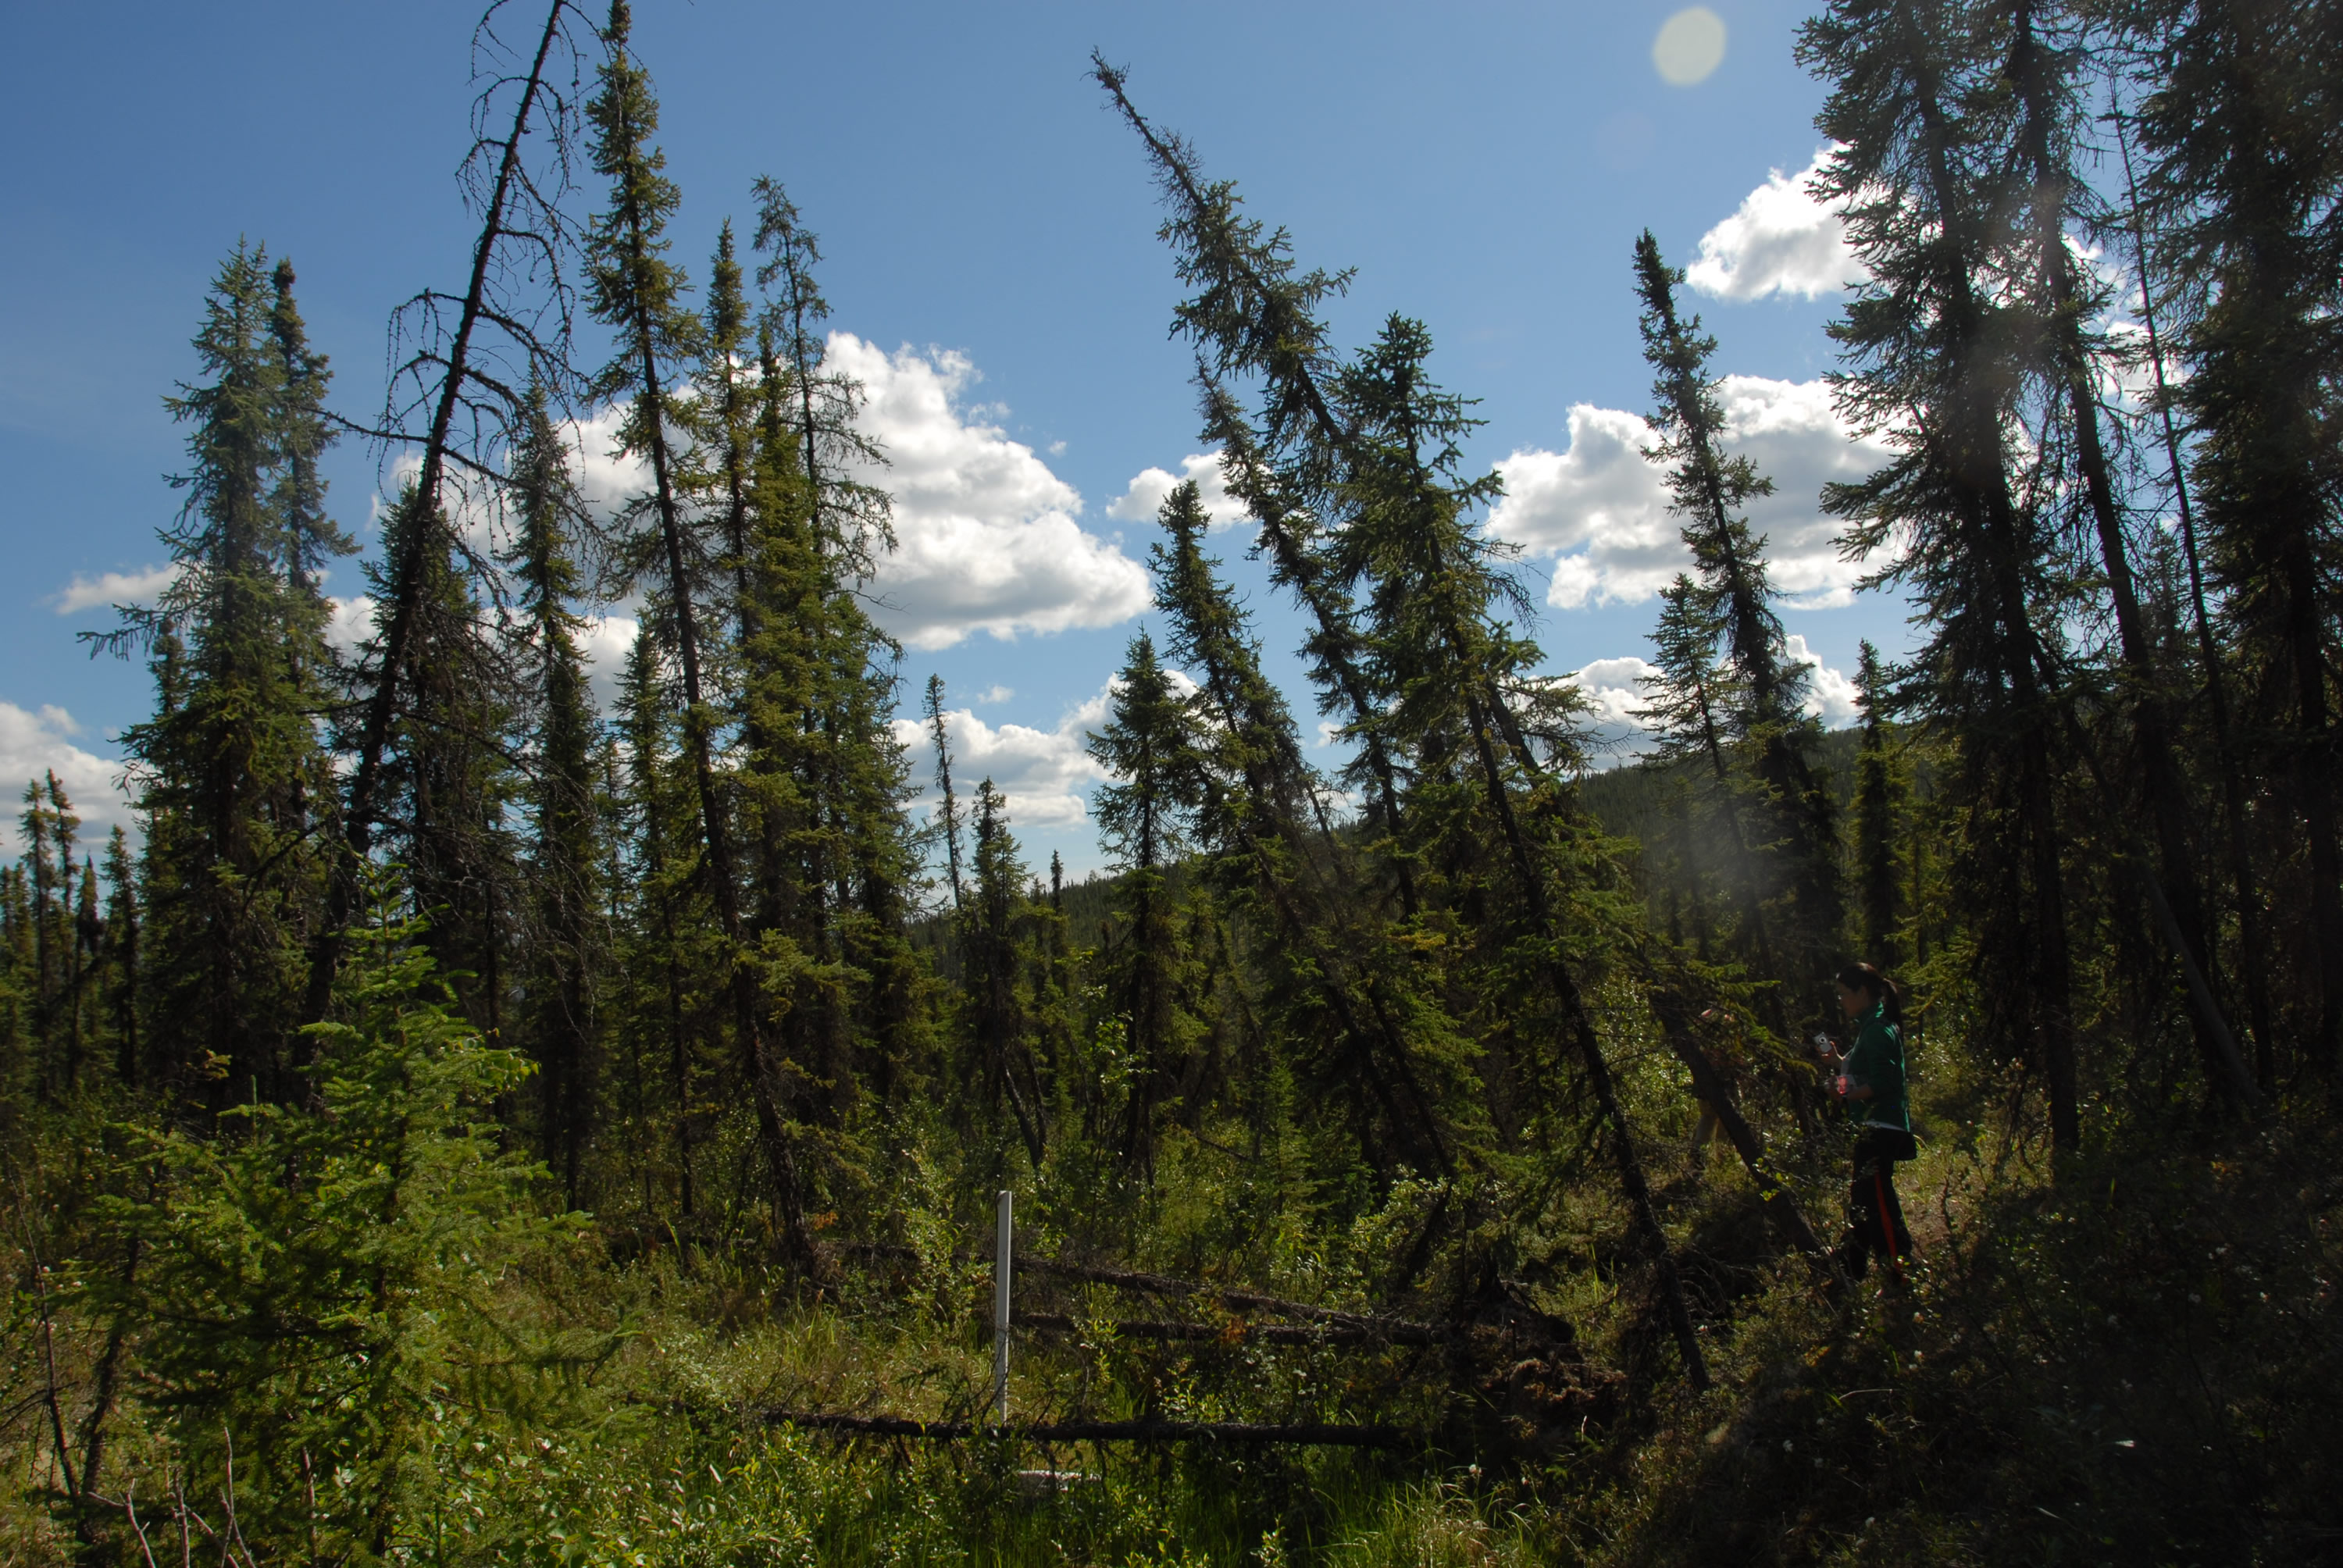 trees leaning in boreal forest